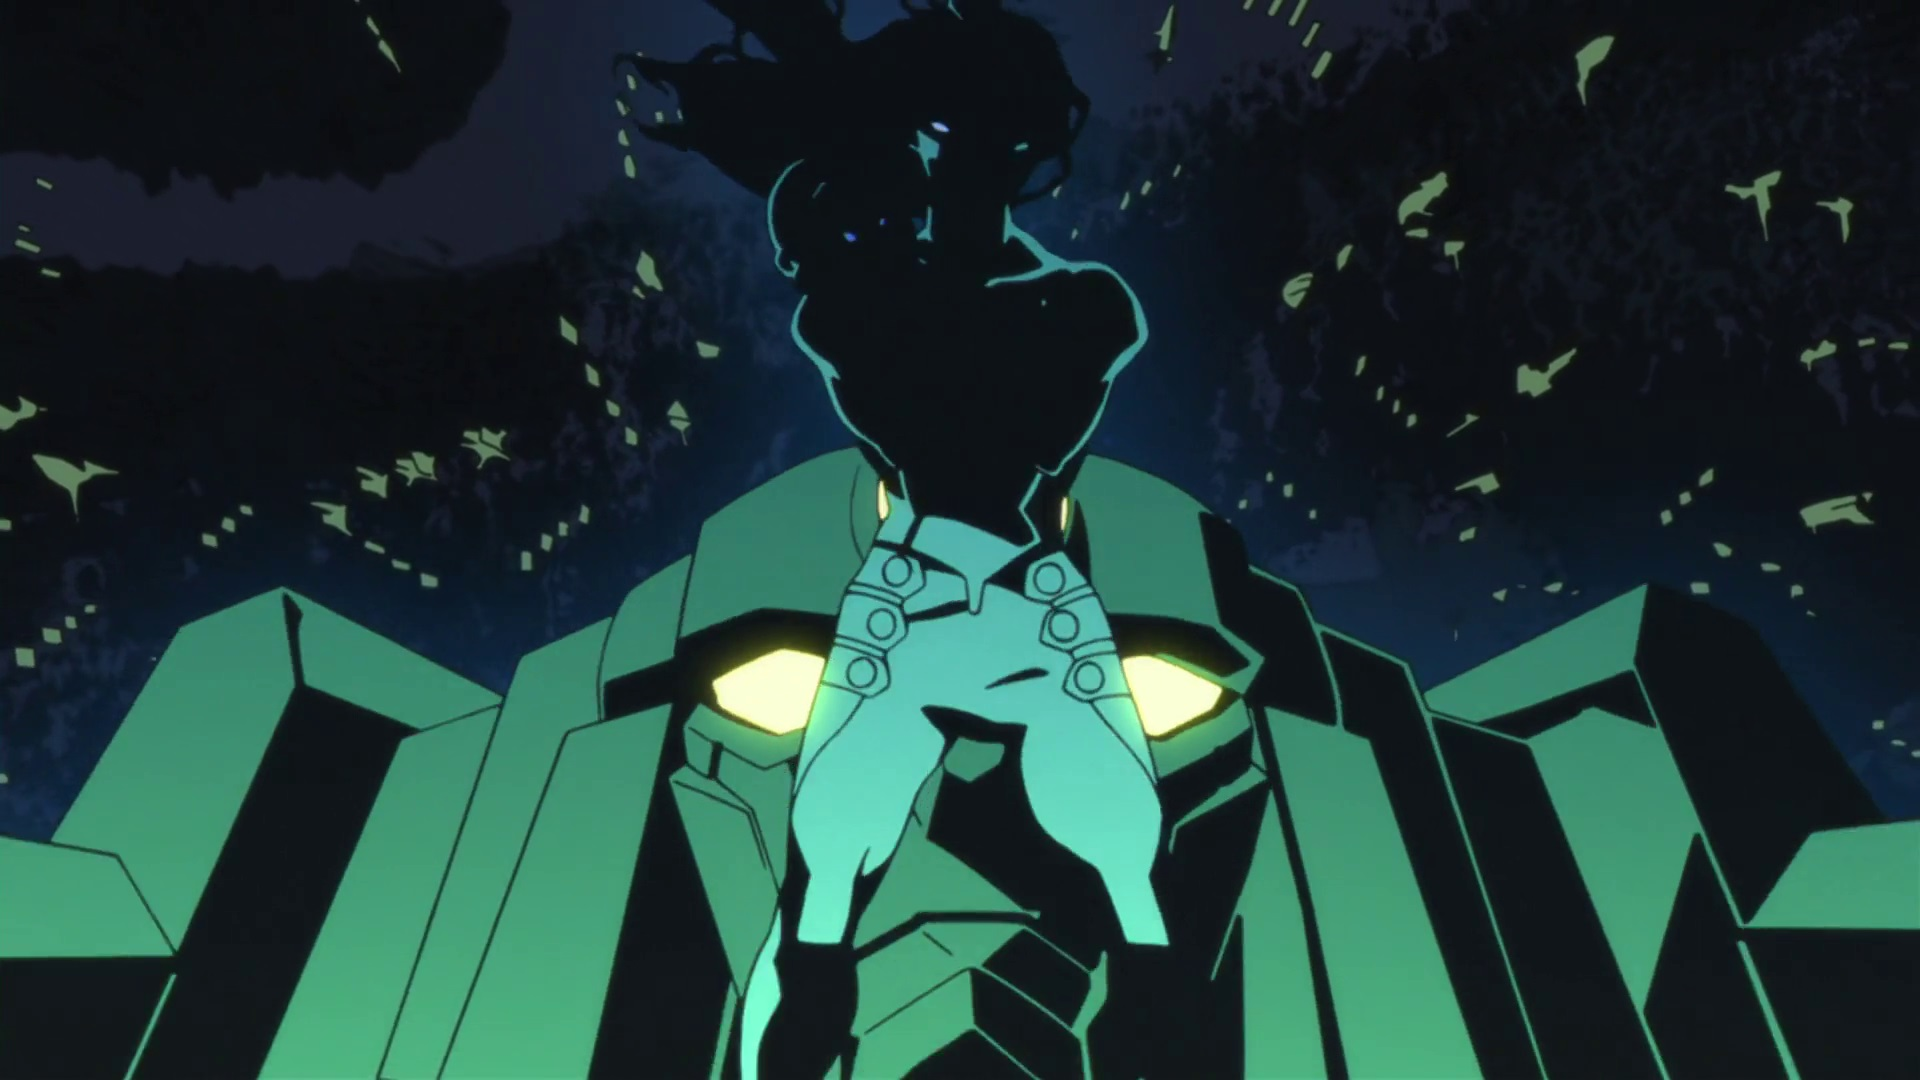 File:Tengen-Toppa-Gurren-Lagann-Parallel-Works-Episode-8.jpg